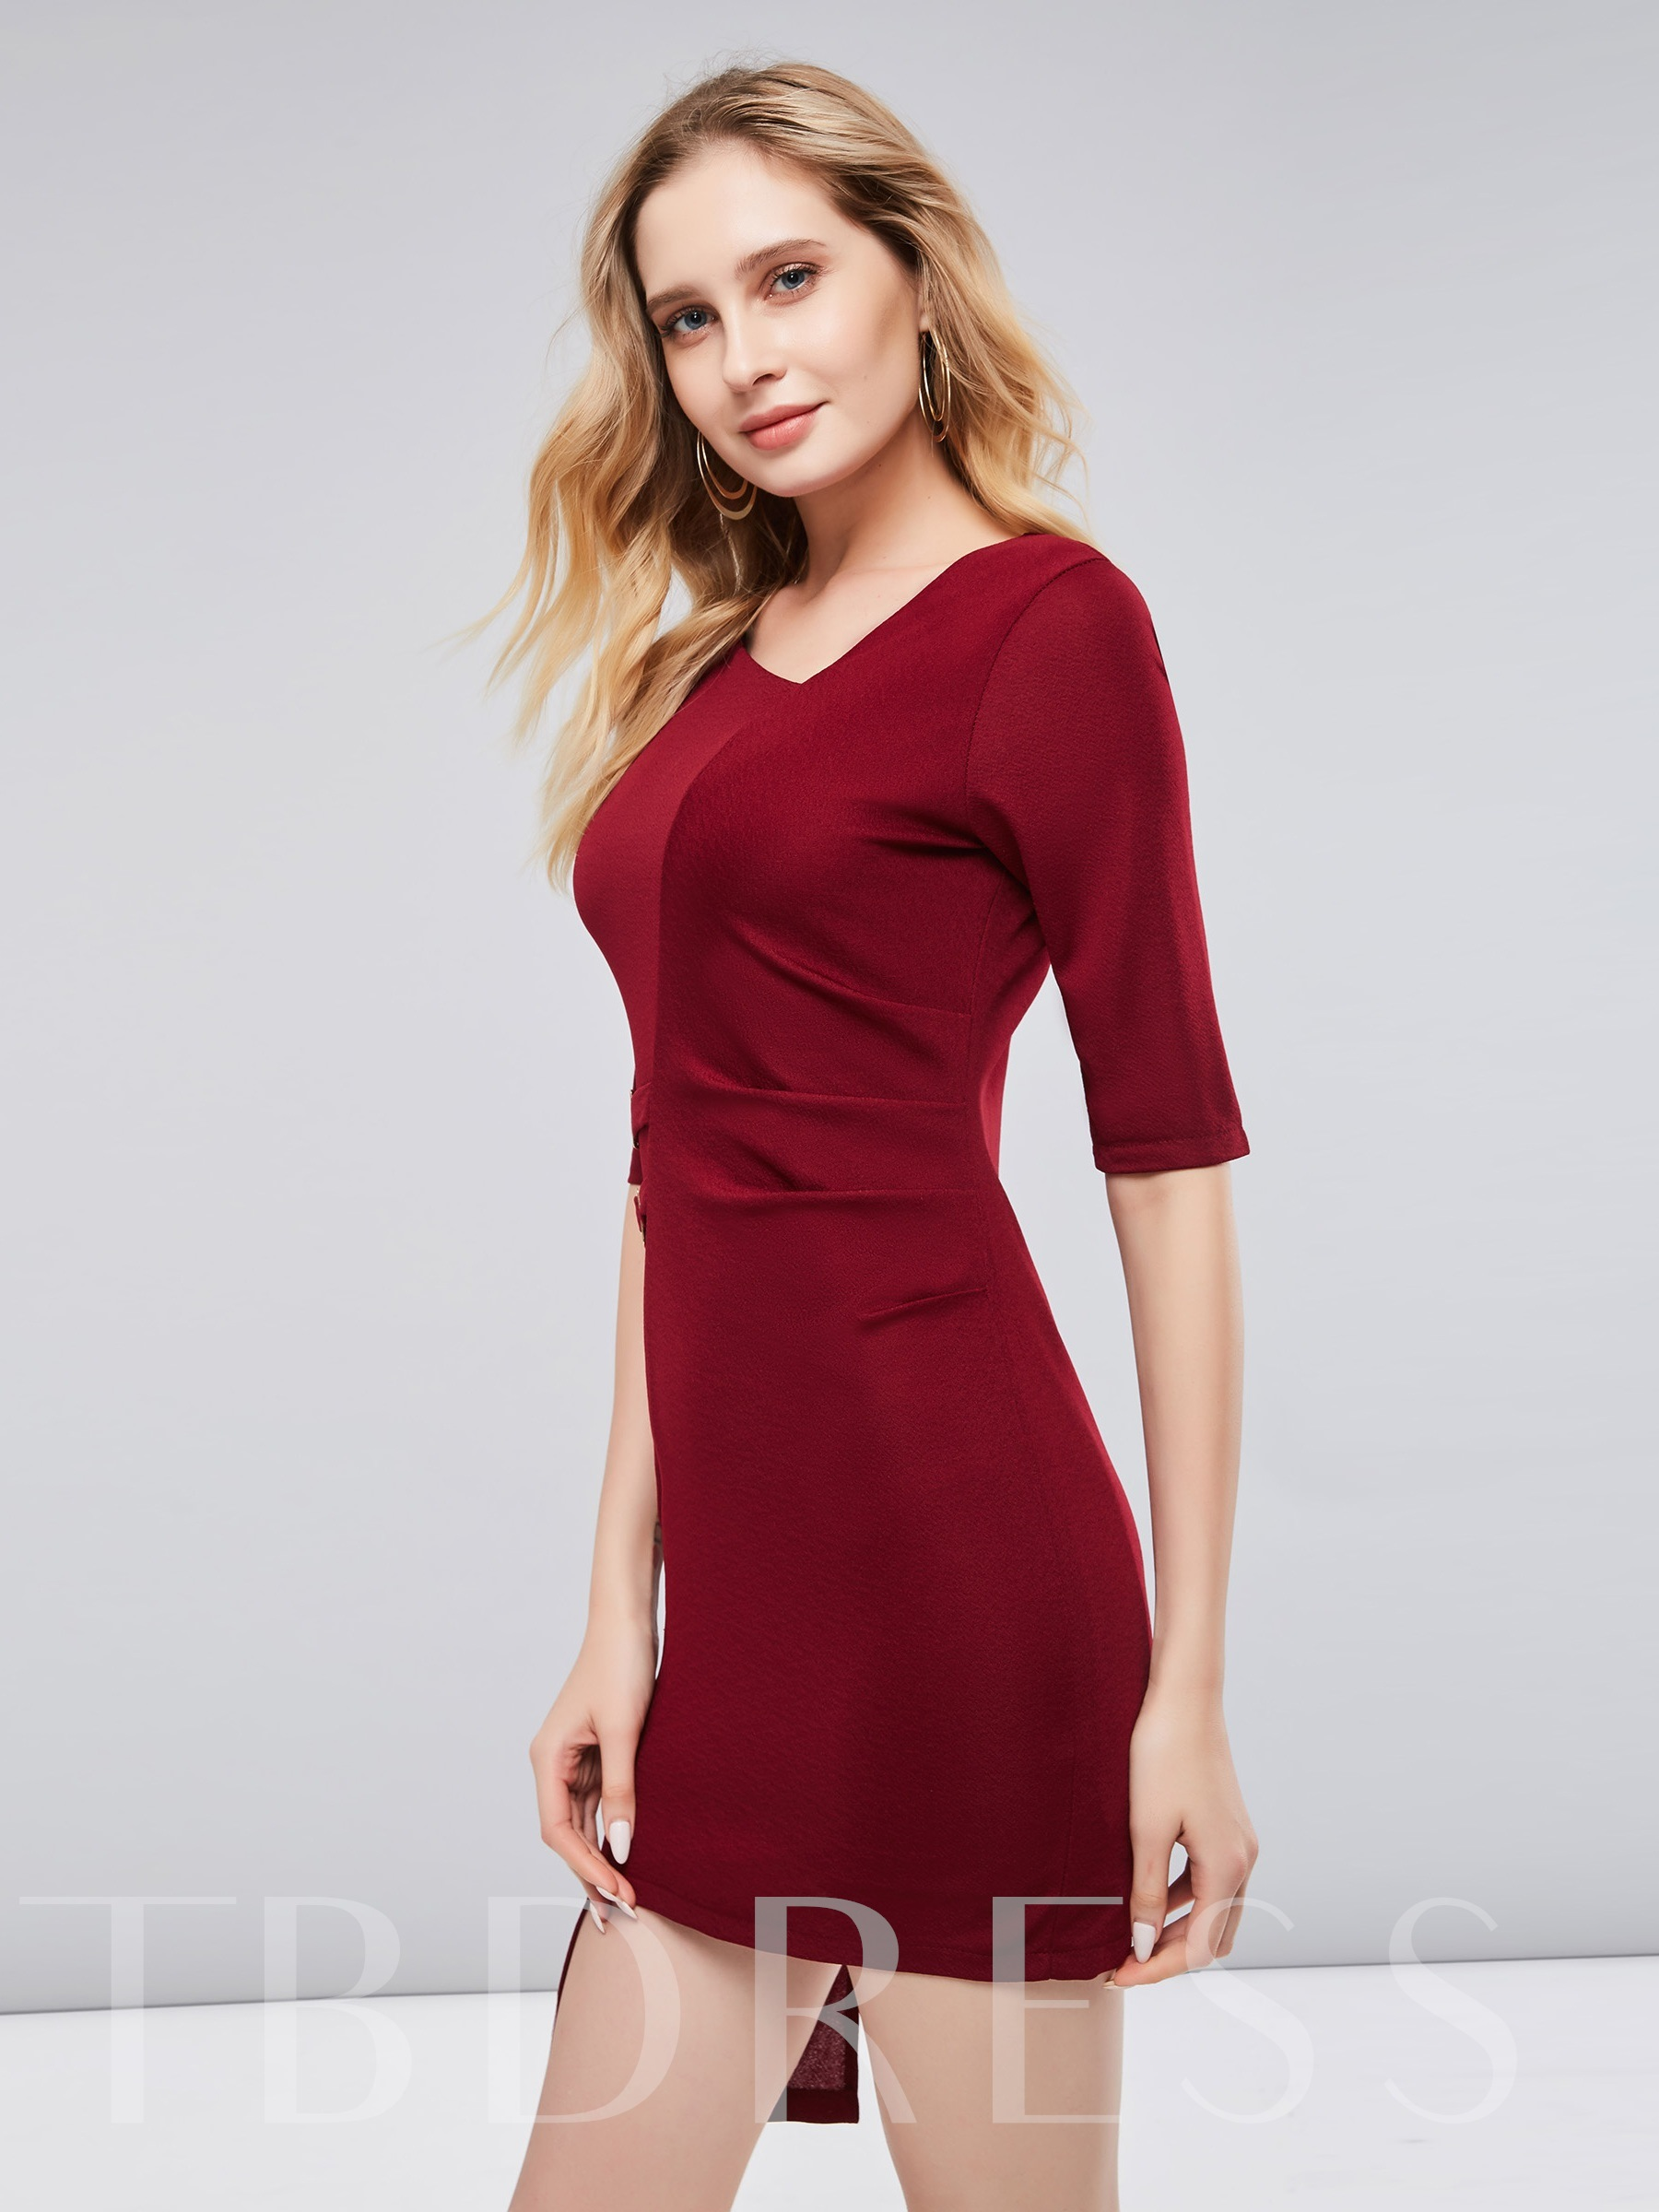 Buy 3/4 Sleeve Asym Burgundy Women's Bodycon Dress, 13404214 for $18.11 in TBDress store